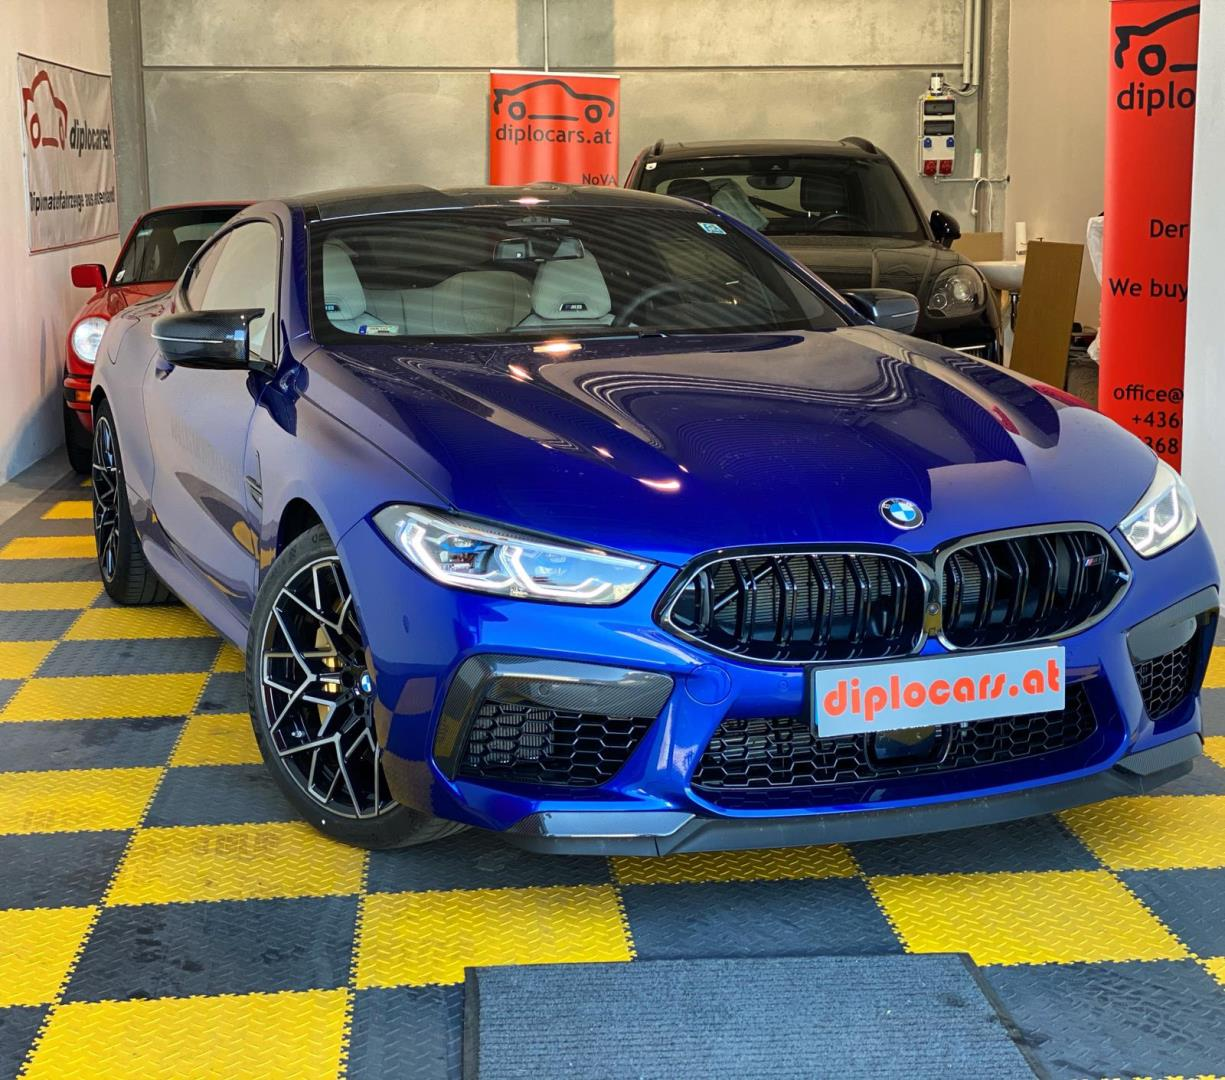 2020 Bmw M8 Competition Coupe For Sale: BMW M8 Competition